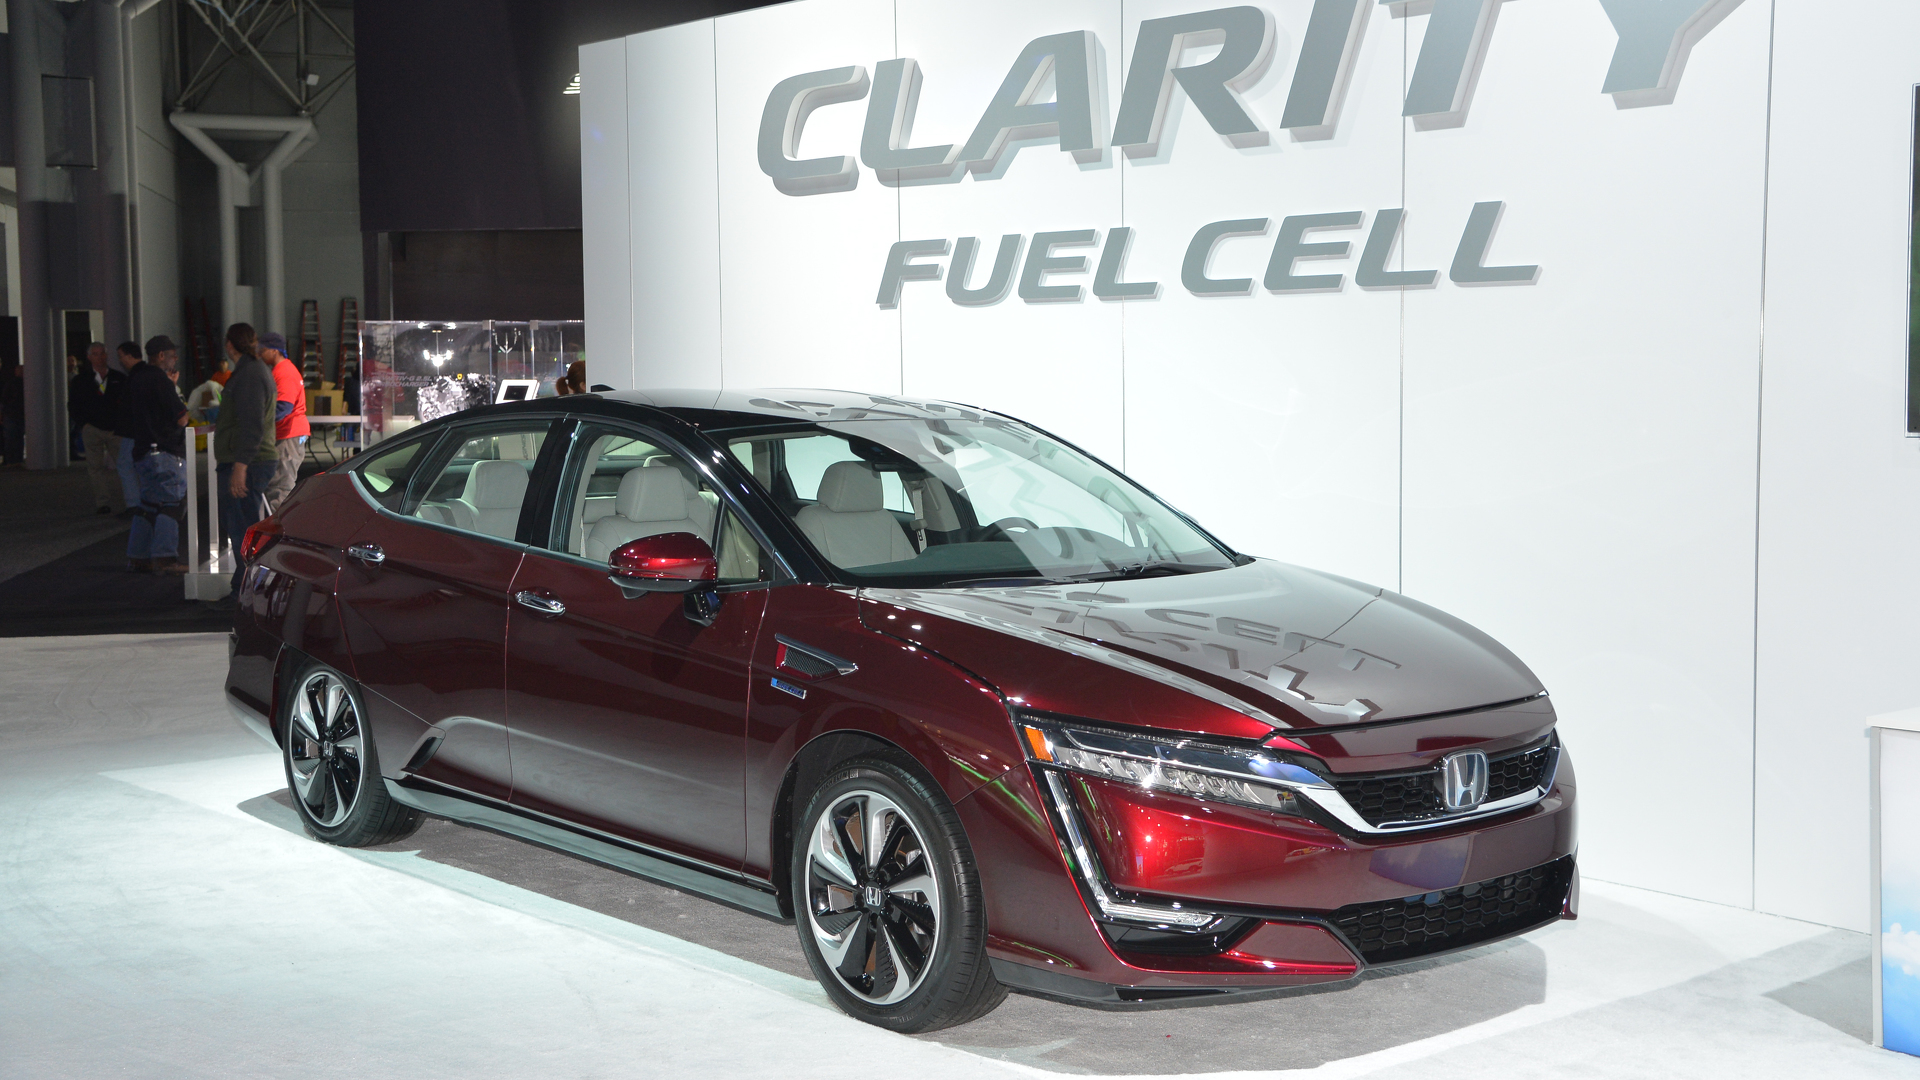 touring presented the updated with lease wallpaper honda sedan motor accord wide features a india new regarding